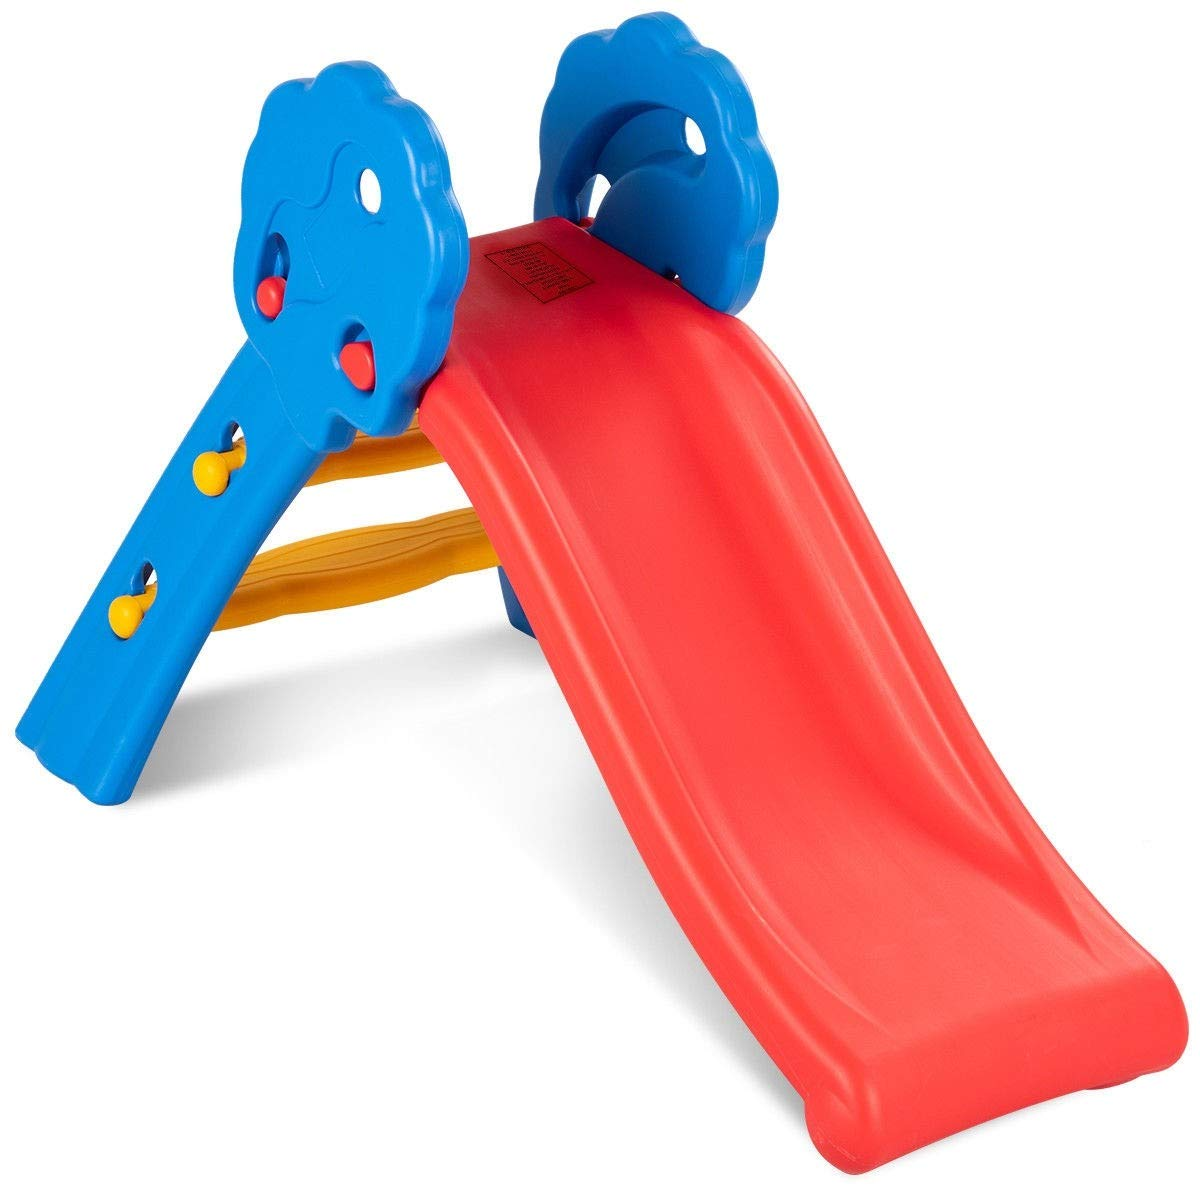 MD Group Folding Up-down Slide Plastic Toy In/Outdoor Children Portable Lightweight Fun Step Kids Play